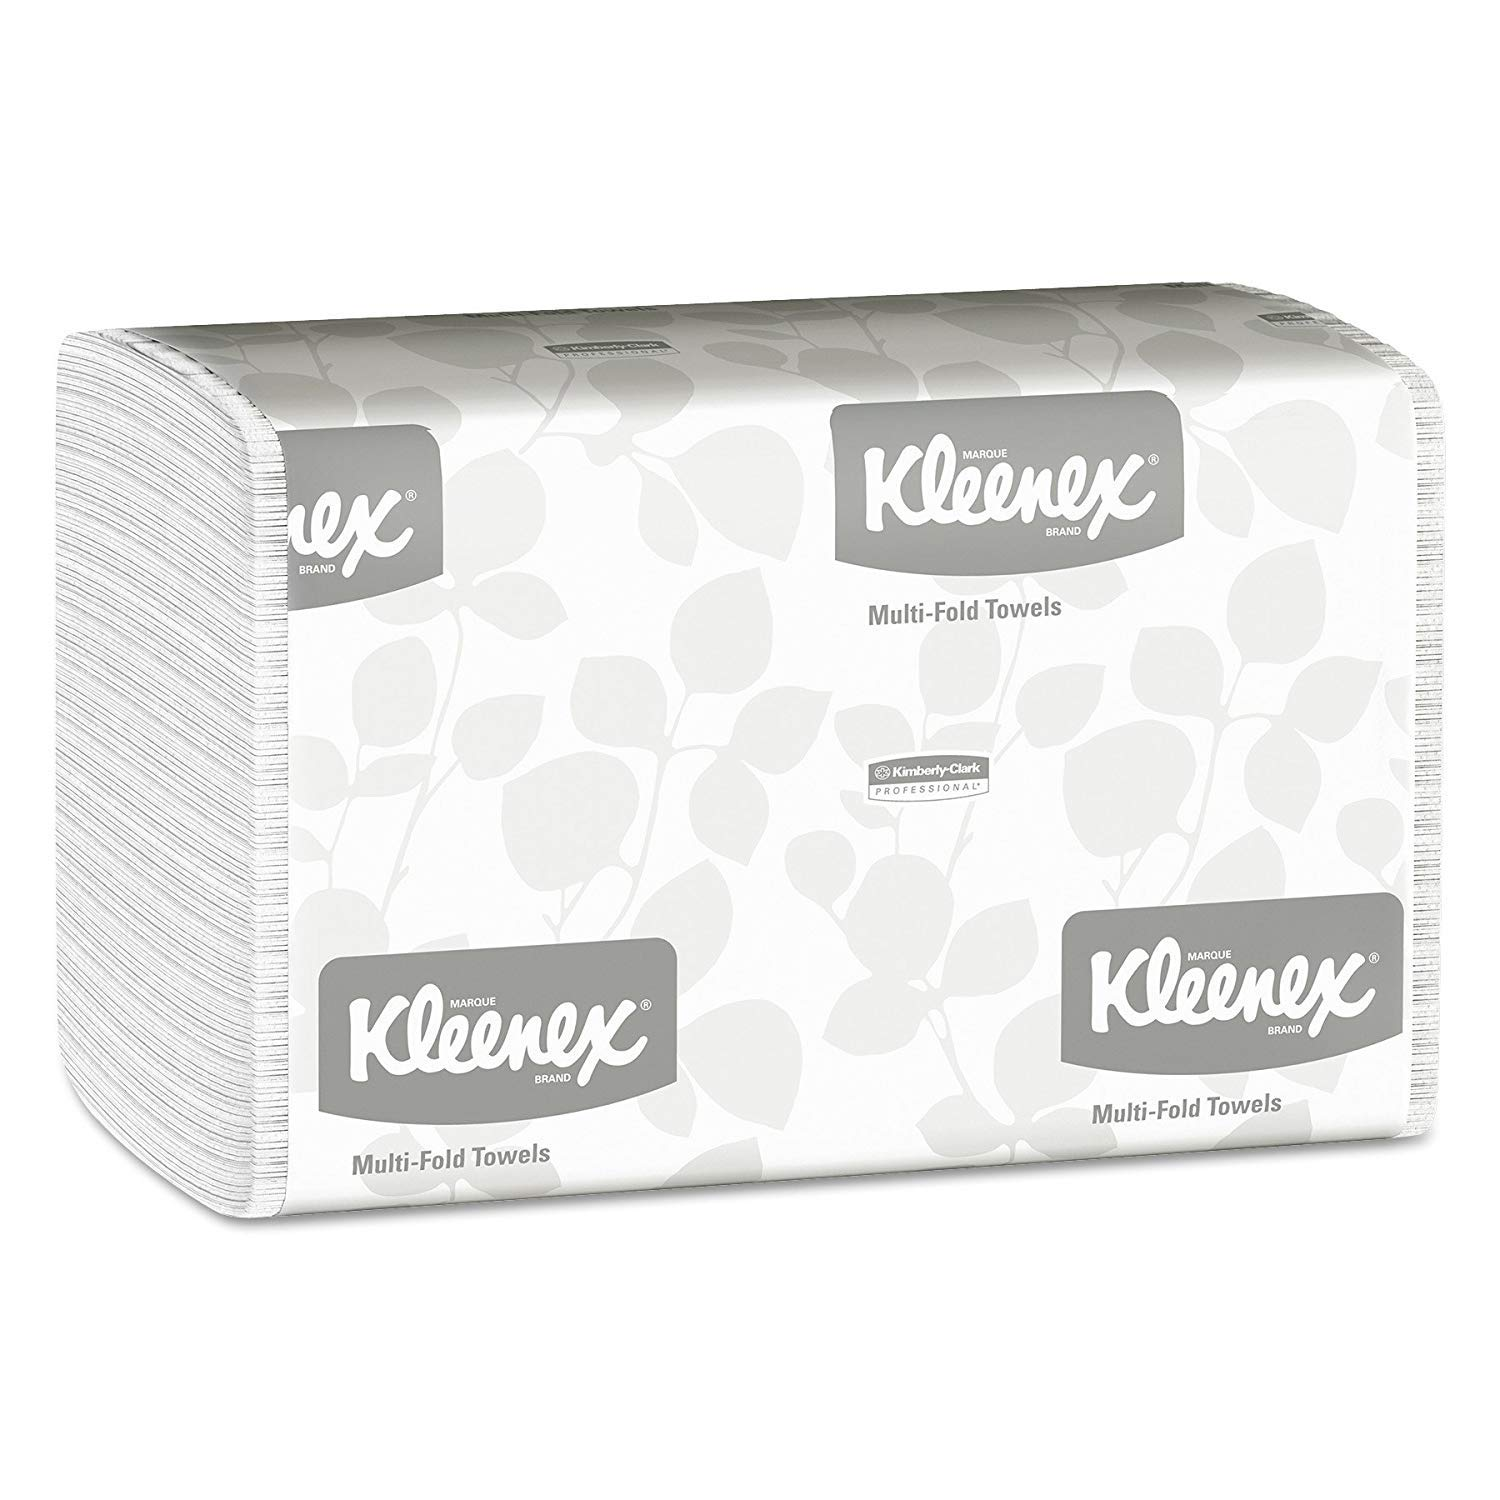 Kimberly-Clark Professional Kleenex Multifold Paper Towels (01890), White, 16 Packs/Case, 150 Tri Fold Paper Towels/Pack, 2,400 Towels/Case (2 Cases of 16 Packs)